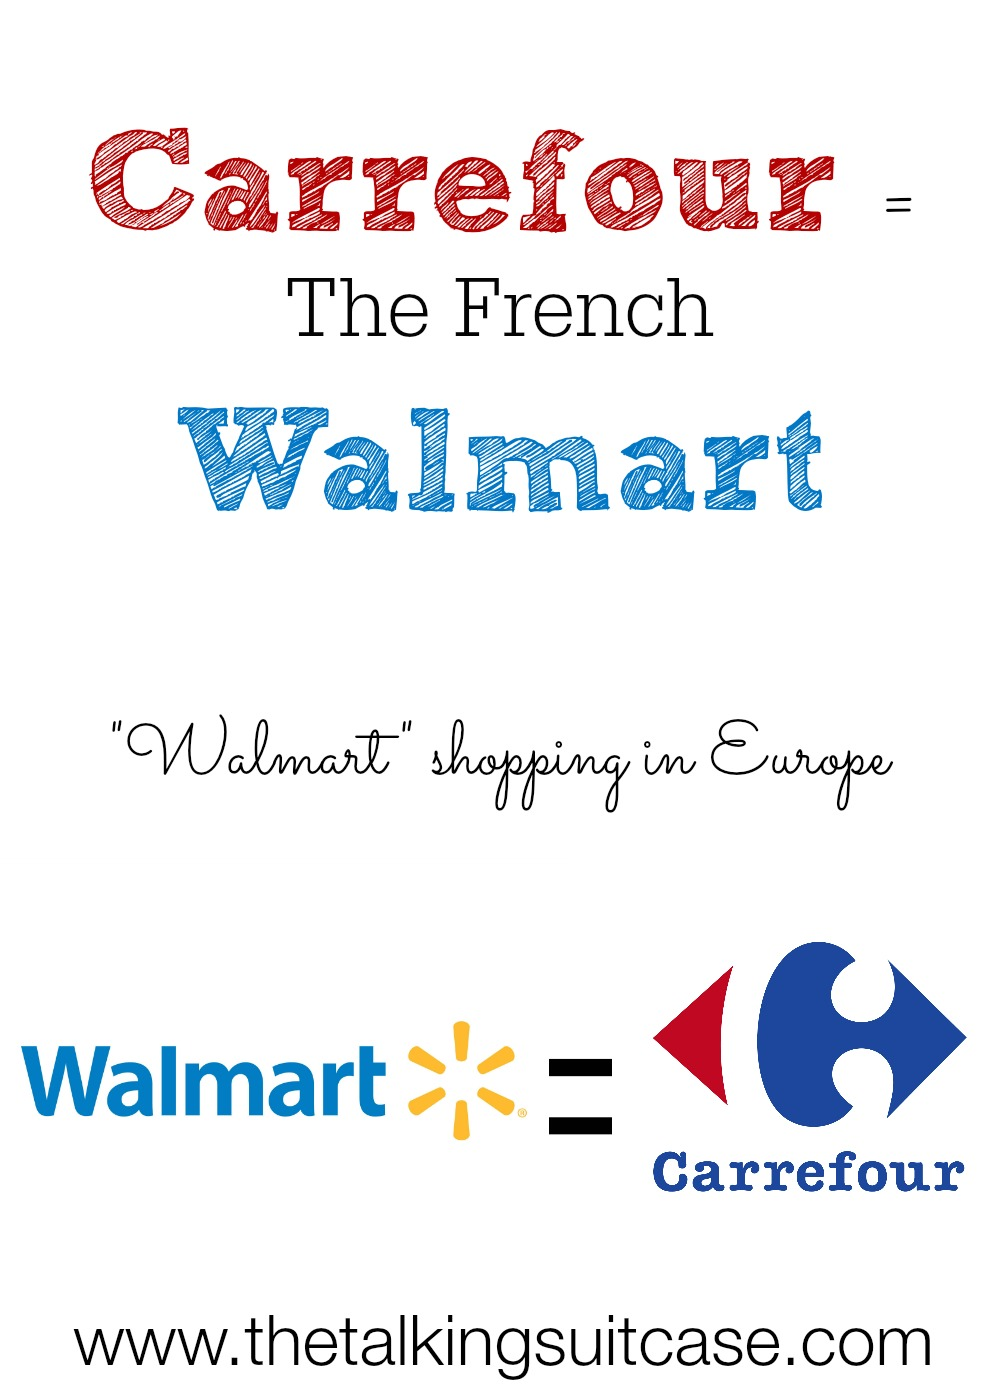 The French Minimalist Capsule Wardrobe Winter 2018 2019: Carrefour = The French Walmart